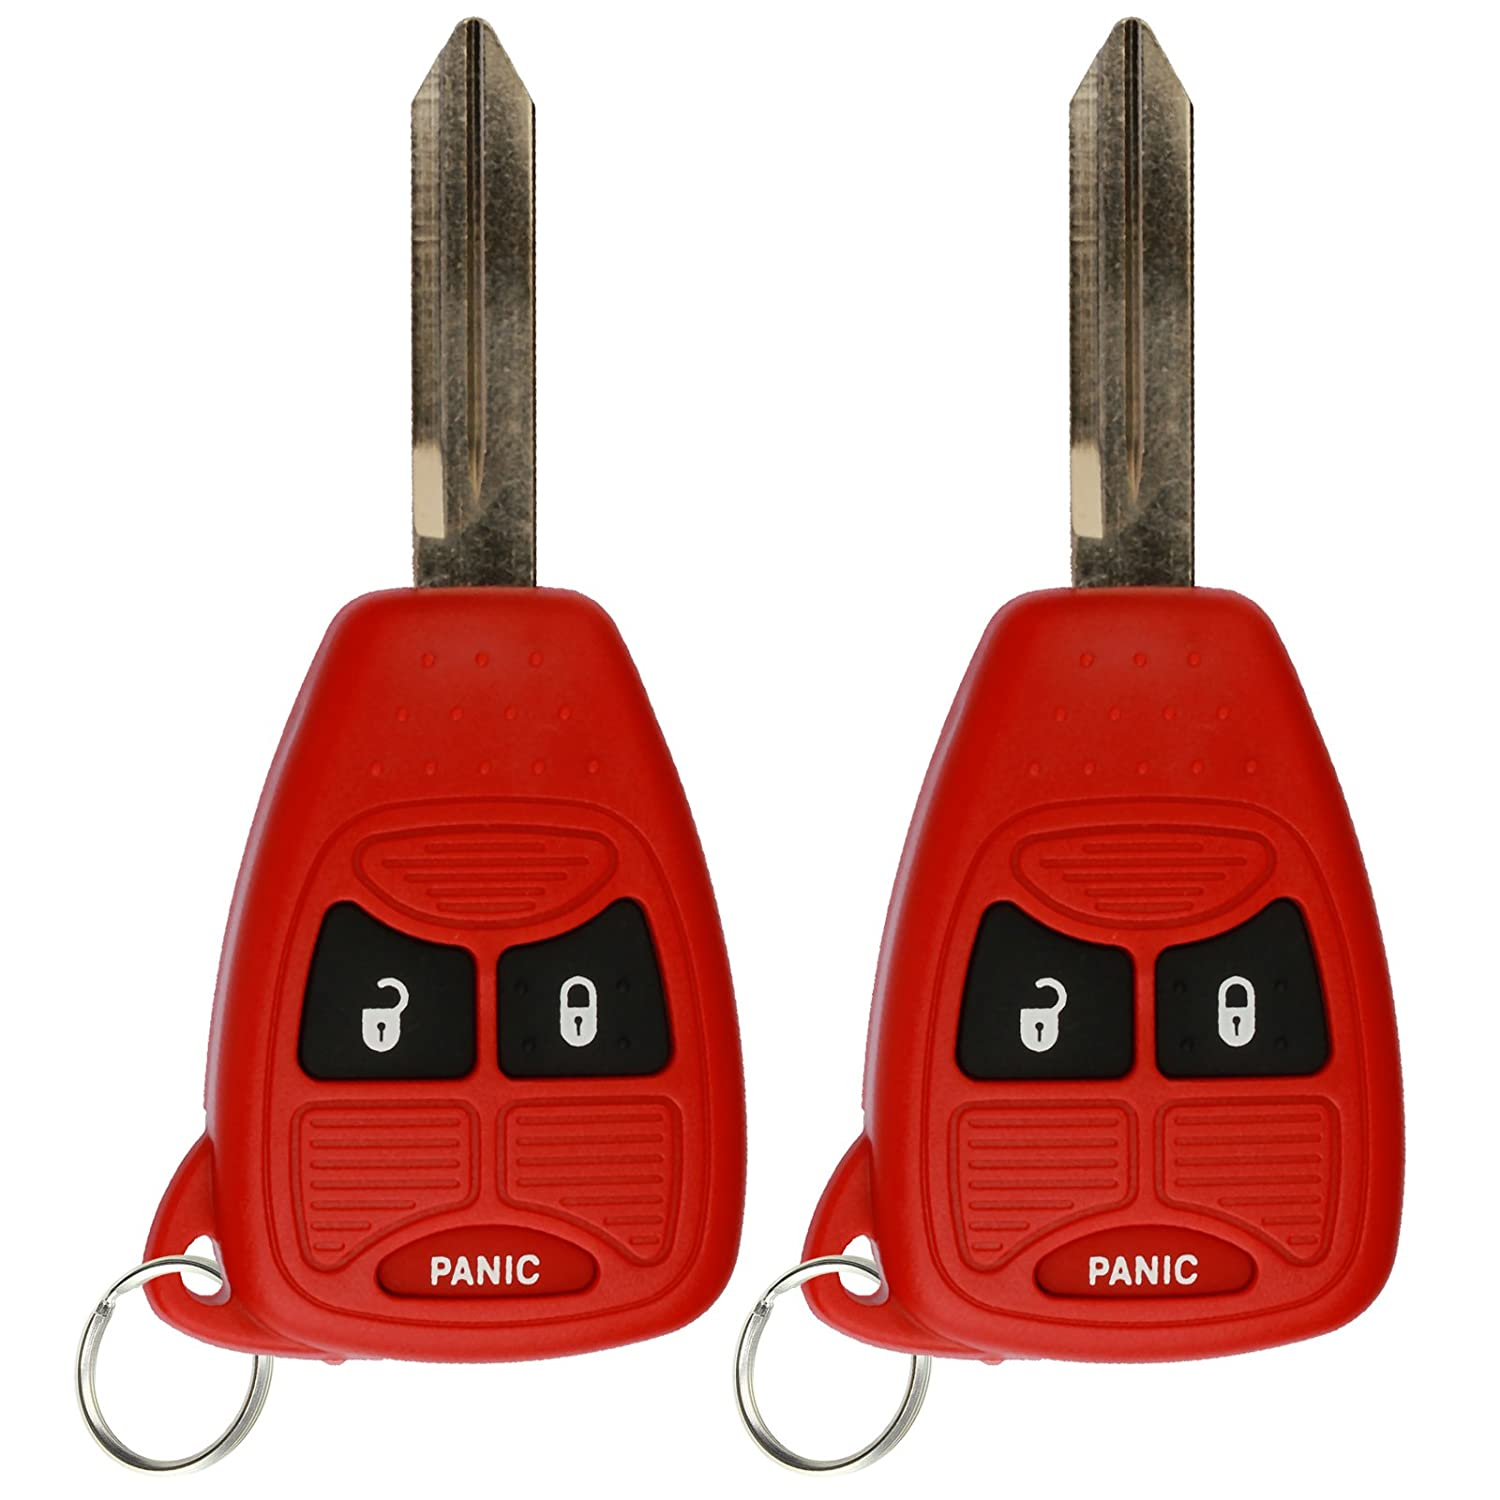 KeylessOption Keyless Entry Remote Control Car Key Fob Replacement for OHT692427AA KOBDT04A Red Pack of 2